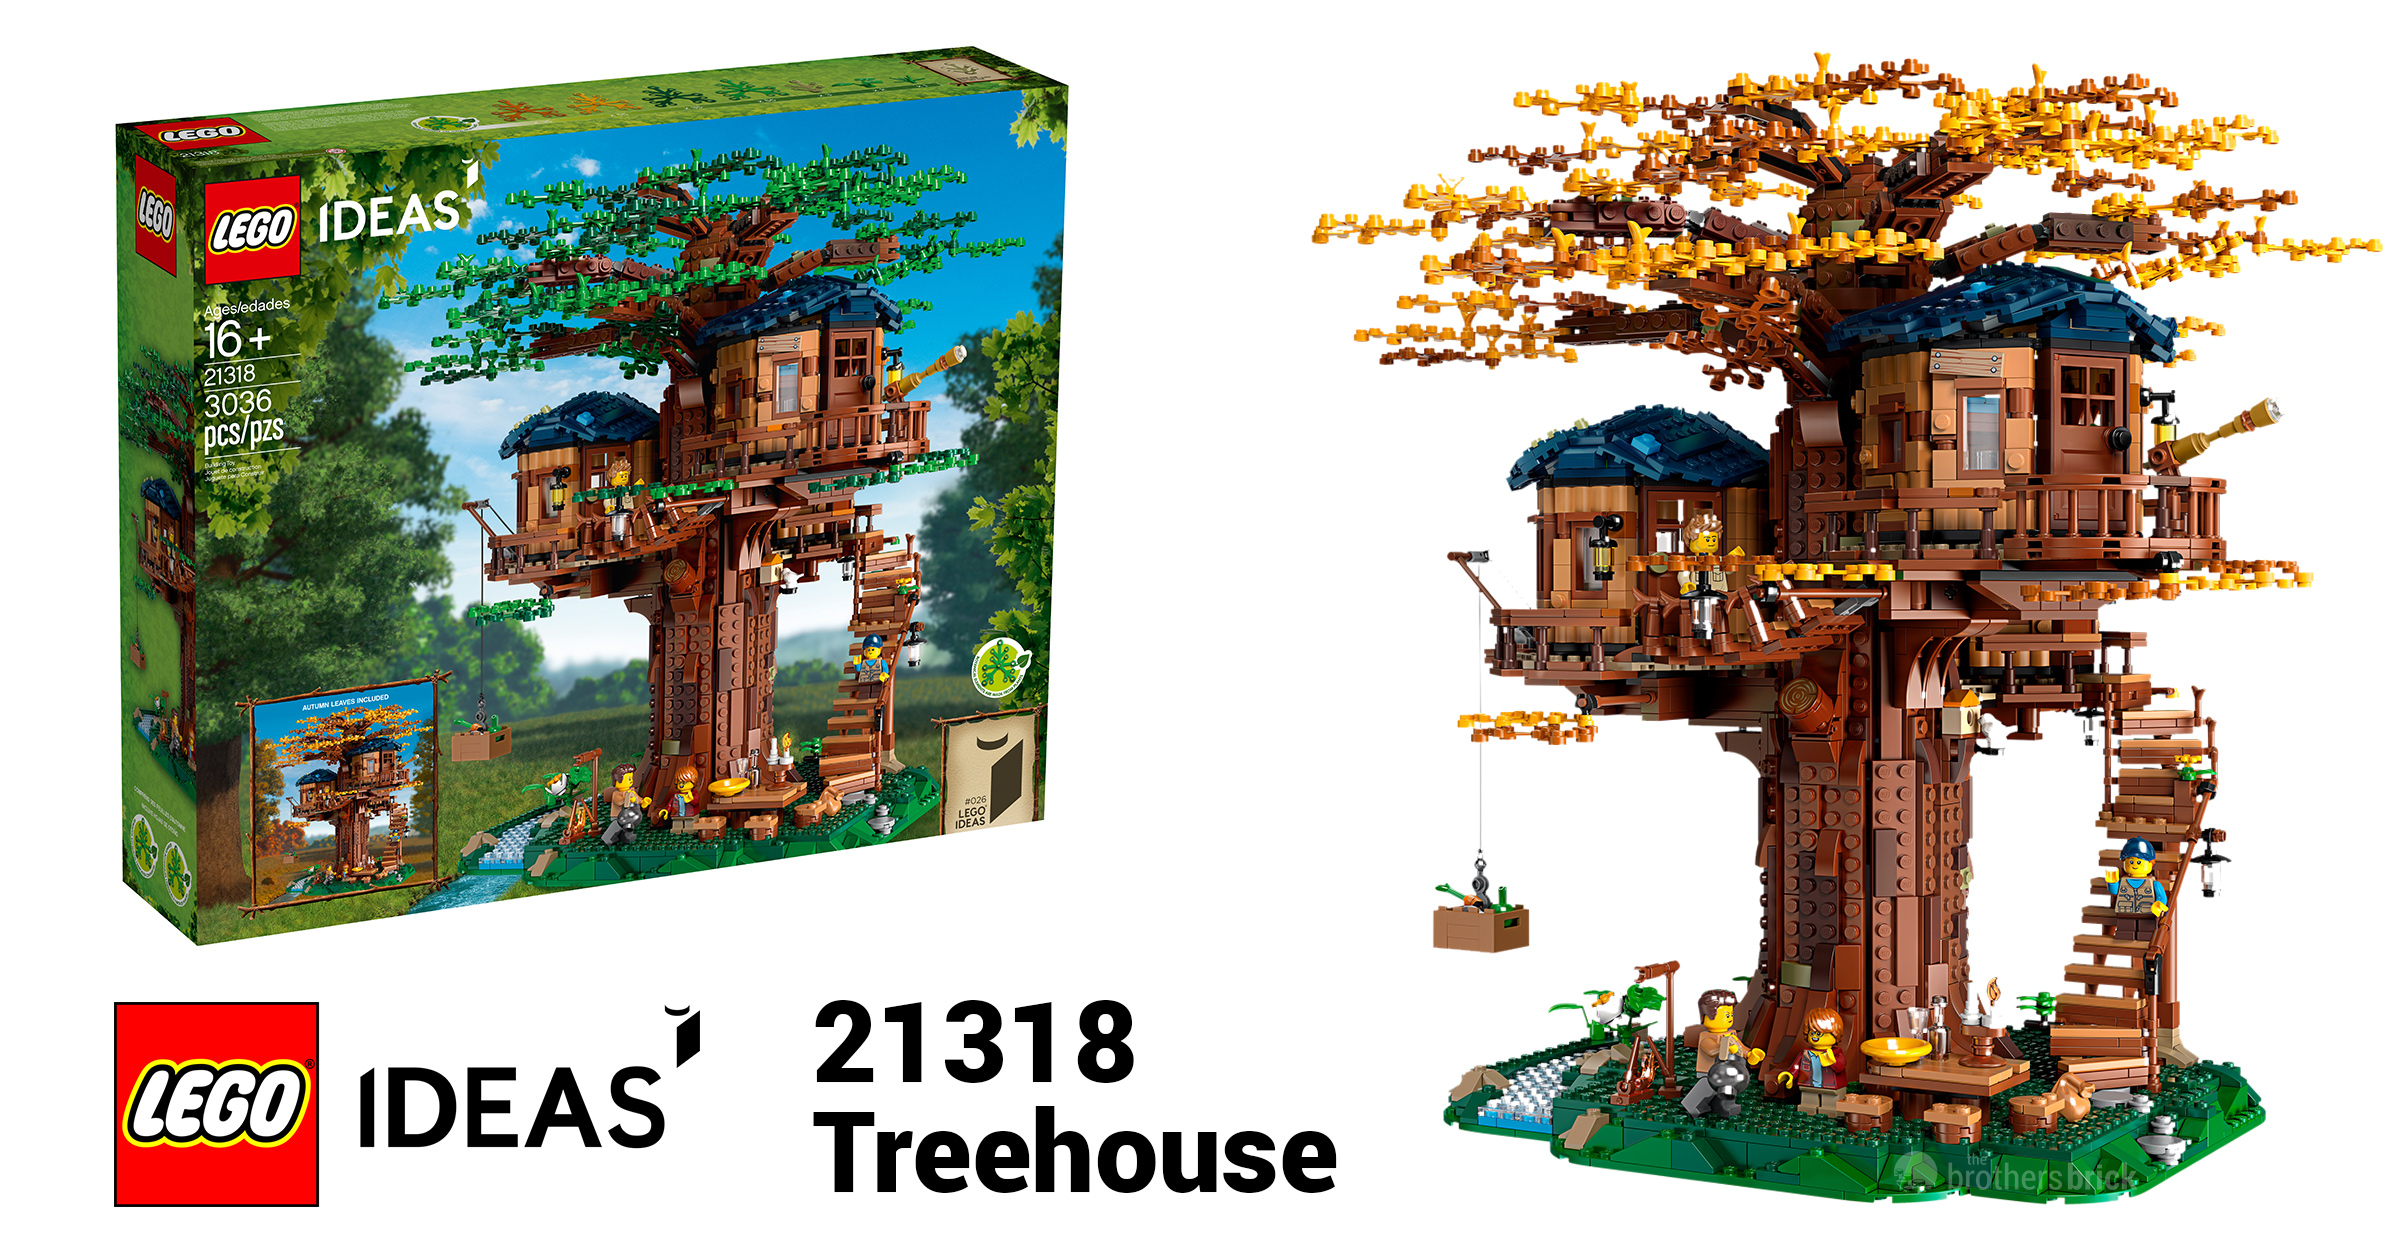 Picture of: Lego Reveals 21318 Ideas Treehouse Featuring 3 000 Pieces And Foliage For 2 Seasons News The Brothers Brick The Brothers Brick